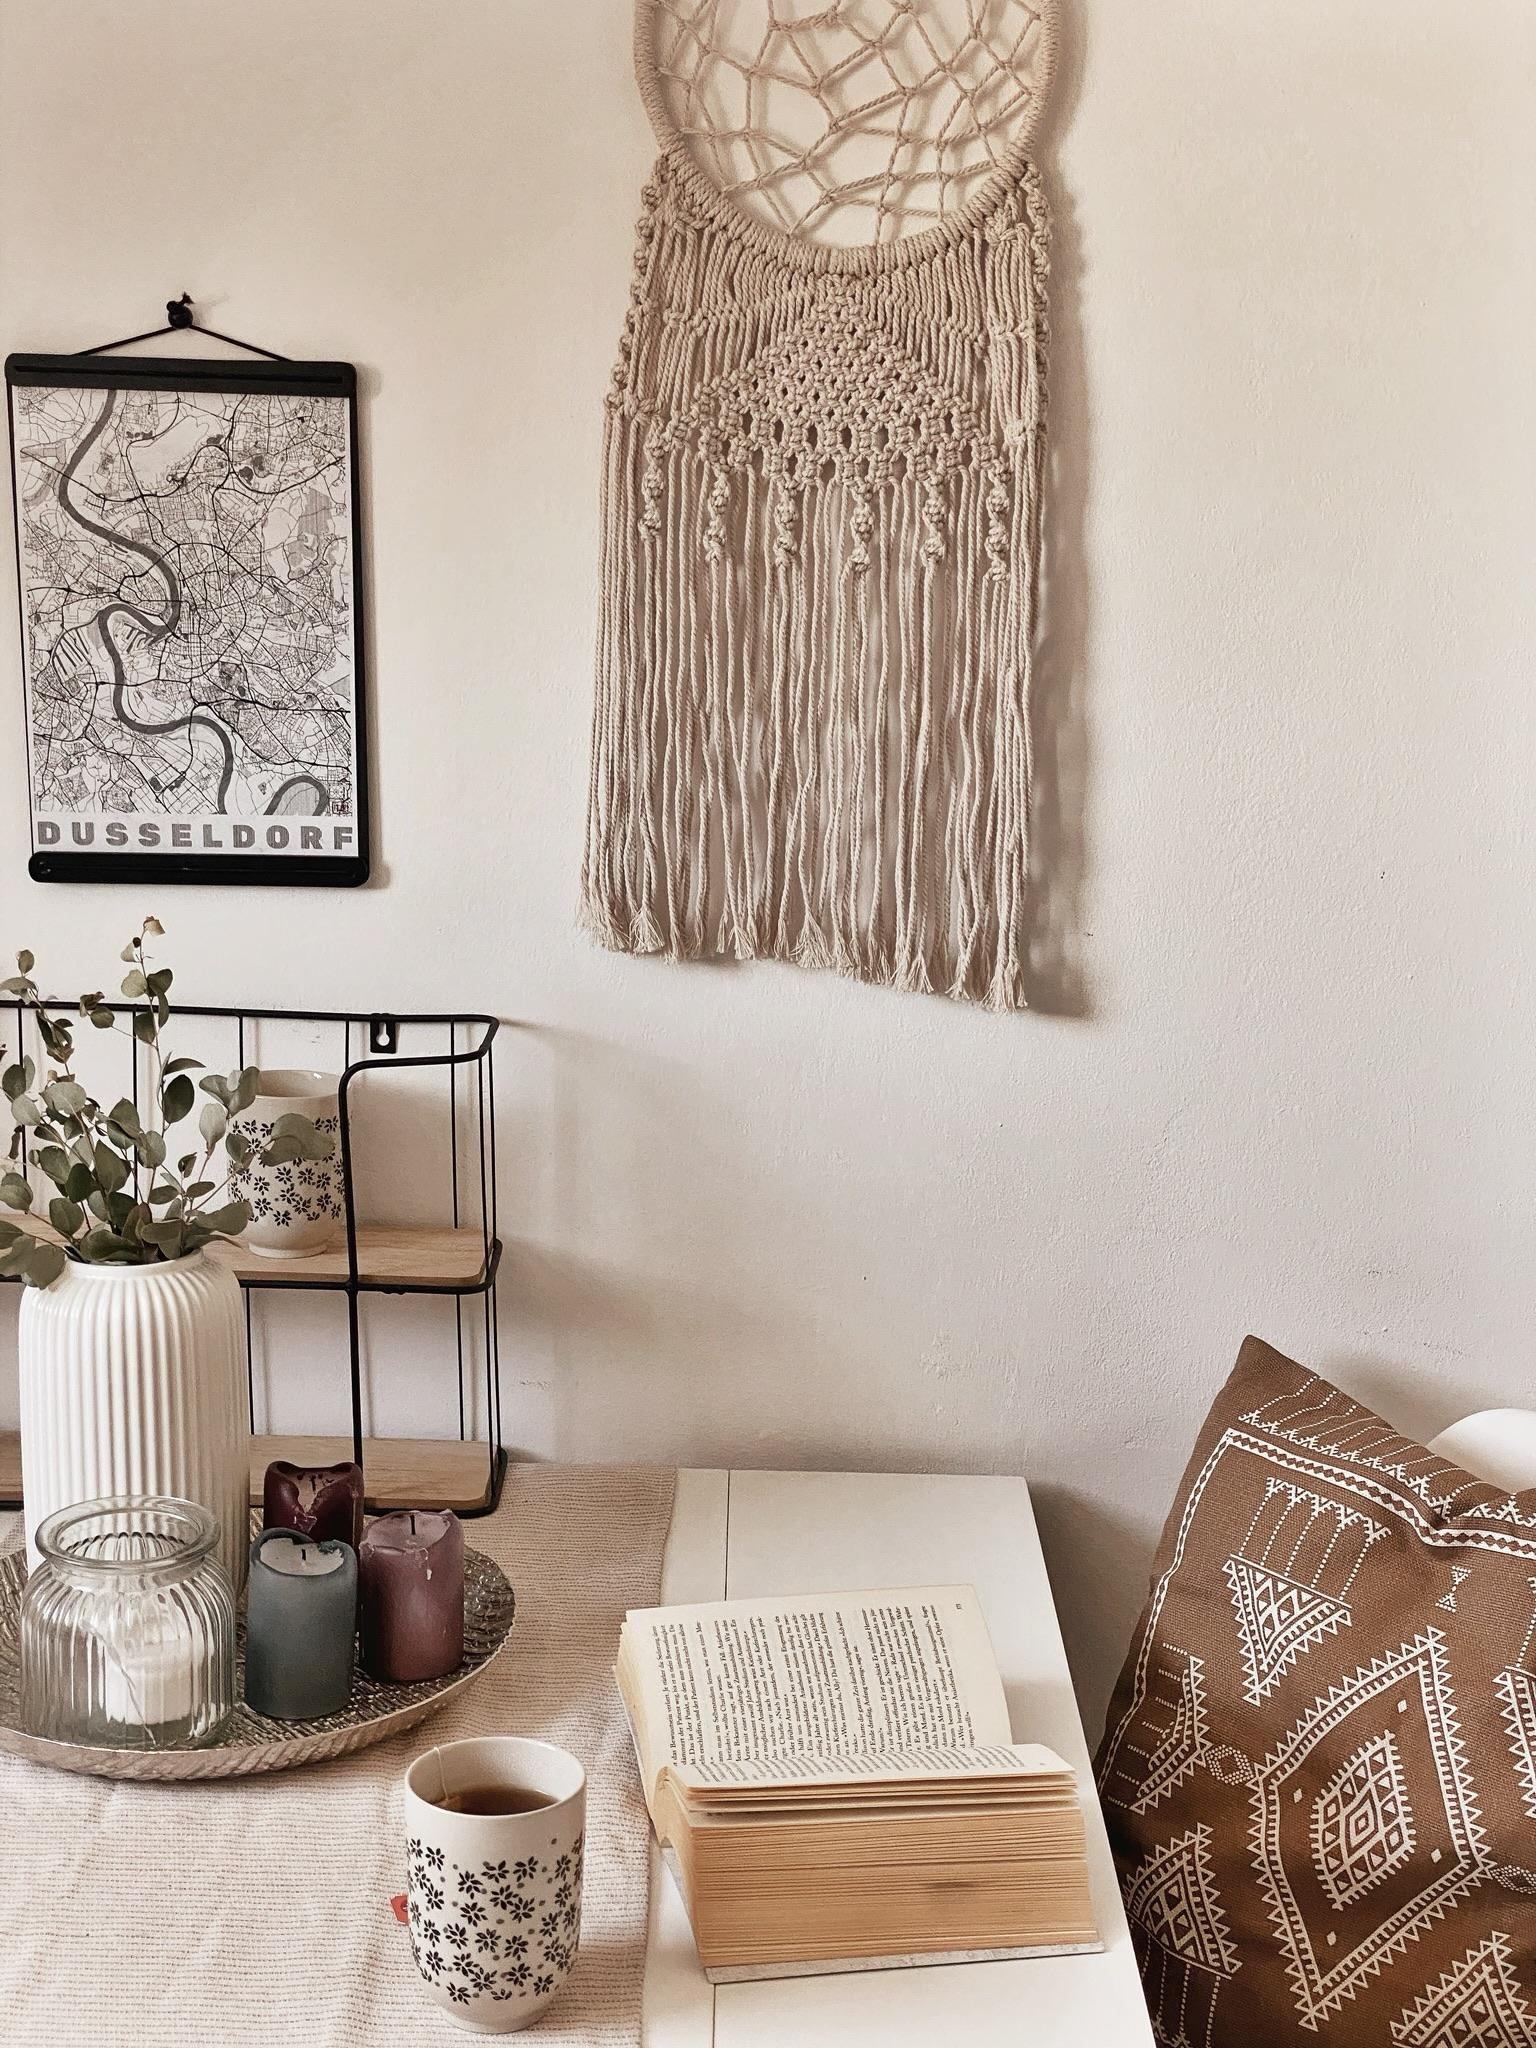 favorite reading spot 📖 #cozy #leseecke #readingspot #reading #vintage #indie #boho #duesseldorf #makramee #dining